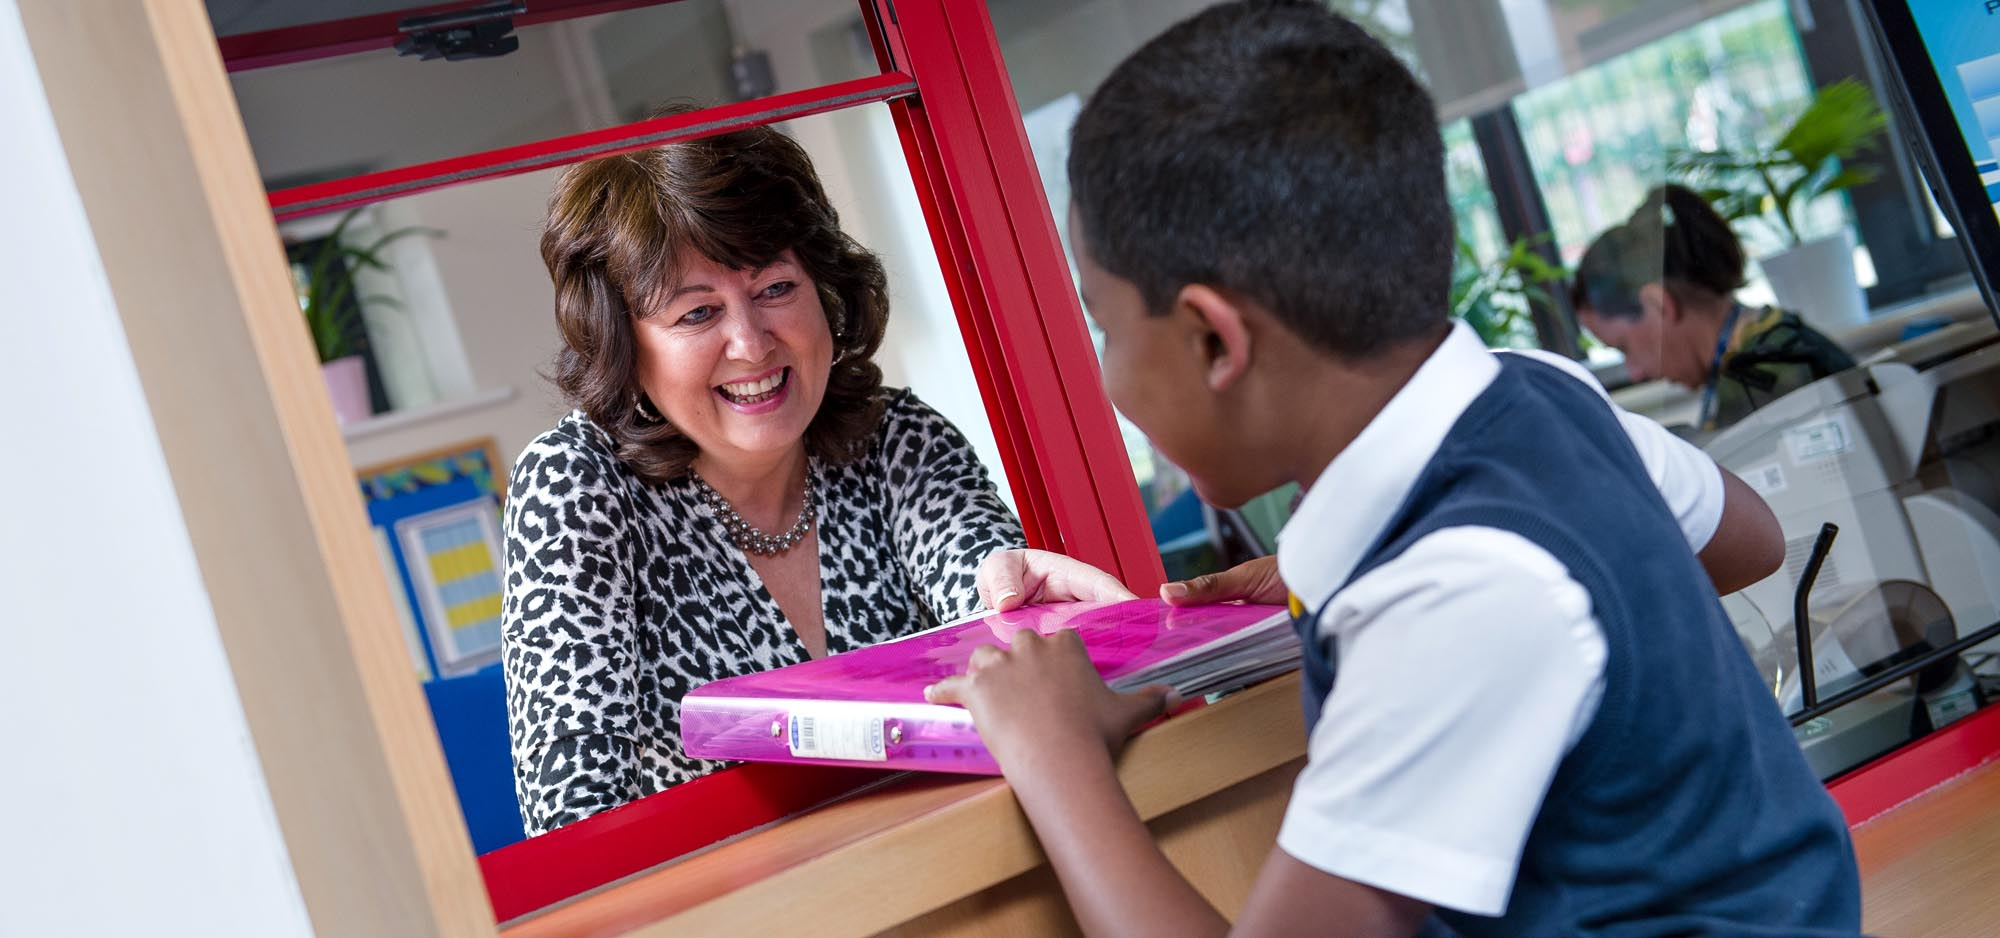 Mrs Drinkwater passing ringbinder to pupil